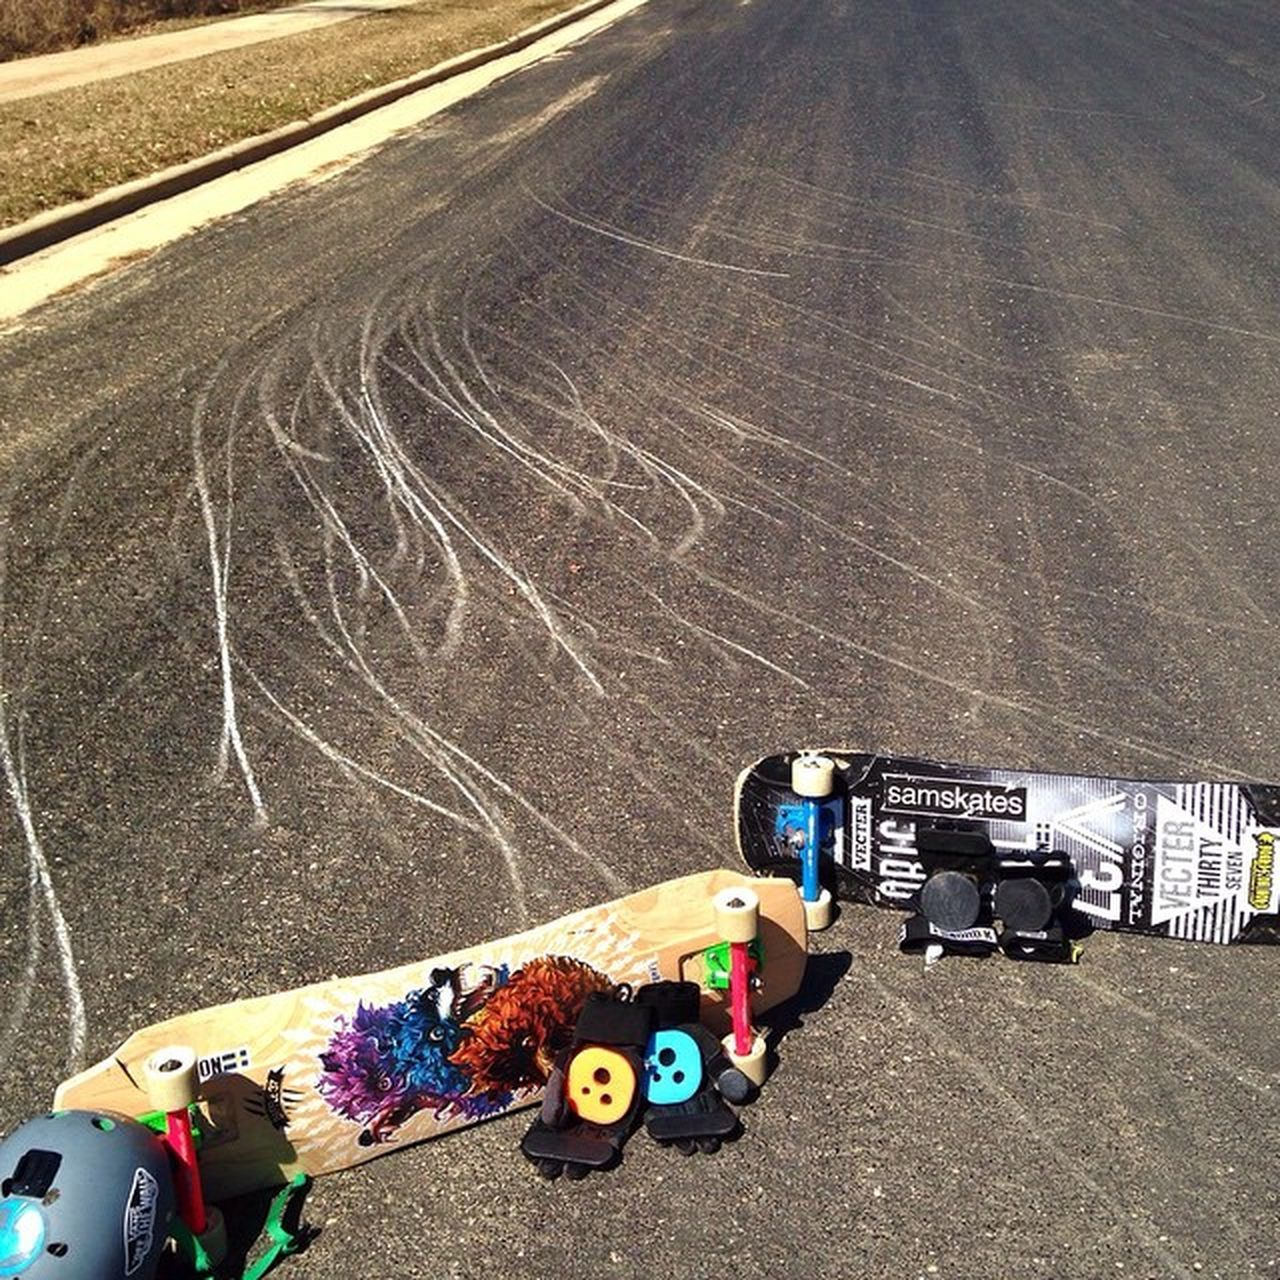 The aftermath from me and @ross_what_up329's session on Tuesday👌💯 --------------------------------------------------Longboard Longboards Longboarder Longboarding Longboardlife Landyachtz Landyachtzlongboards Landyachtzswitchblade Originalskateboards Holesome Holesomepucks Gopro Goprohero Goprohero3 Goprooftheday Goprouniverse Goprohero3plus Baffle37 Sector9